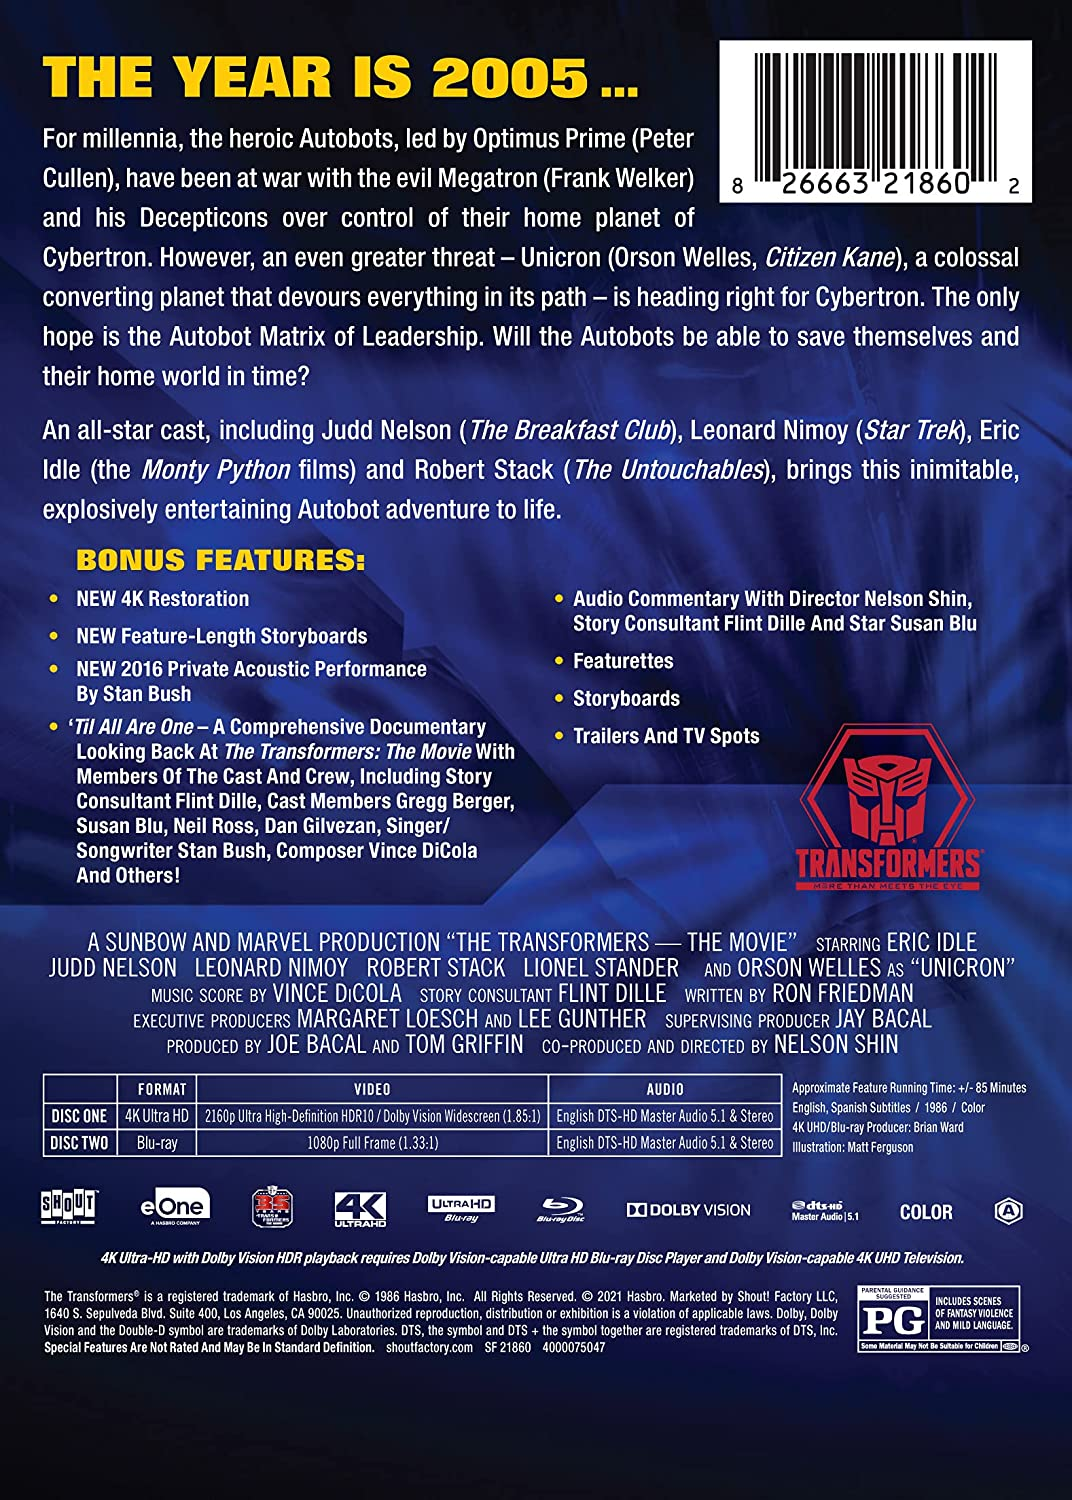 The Transformers- The Movie 35th Anniversary Limited Edition 4k Steelbook back